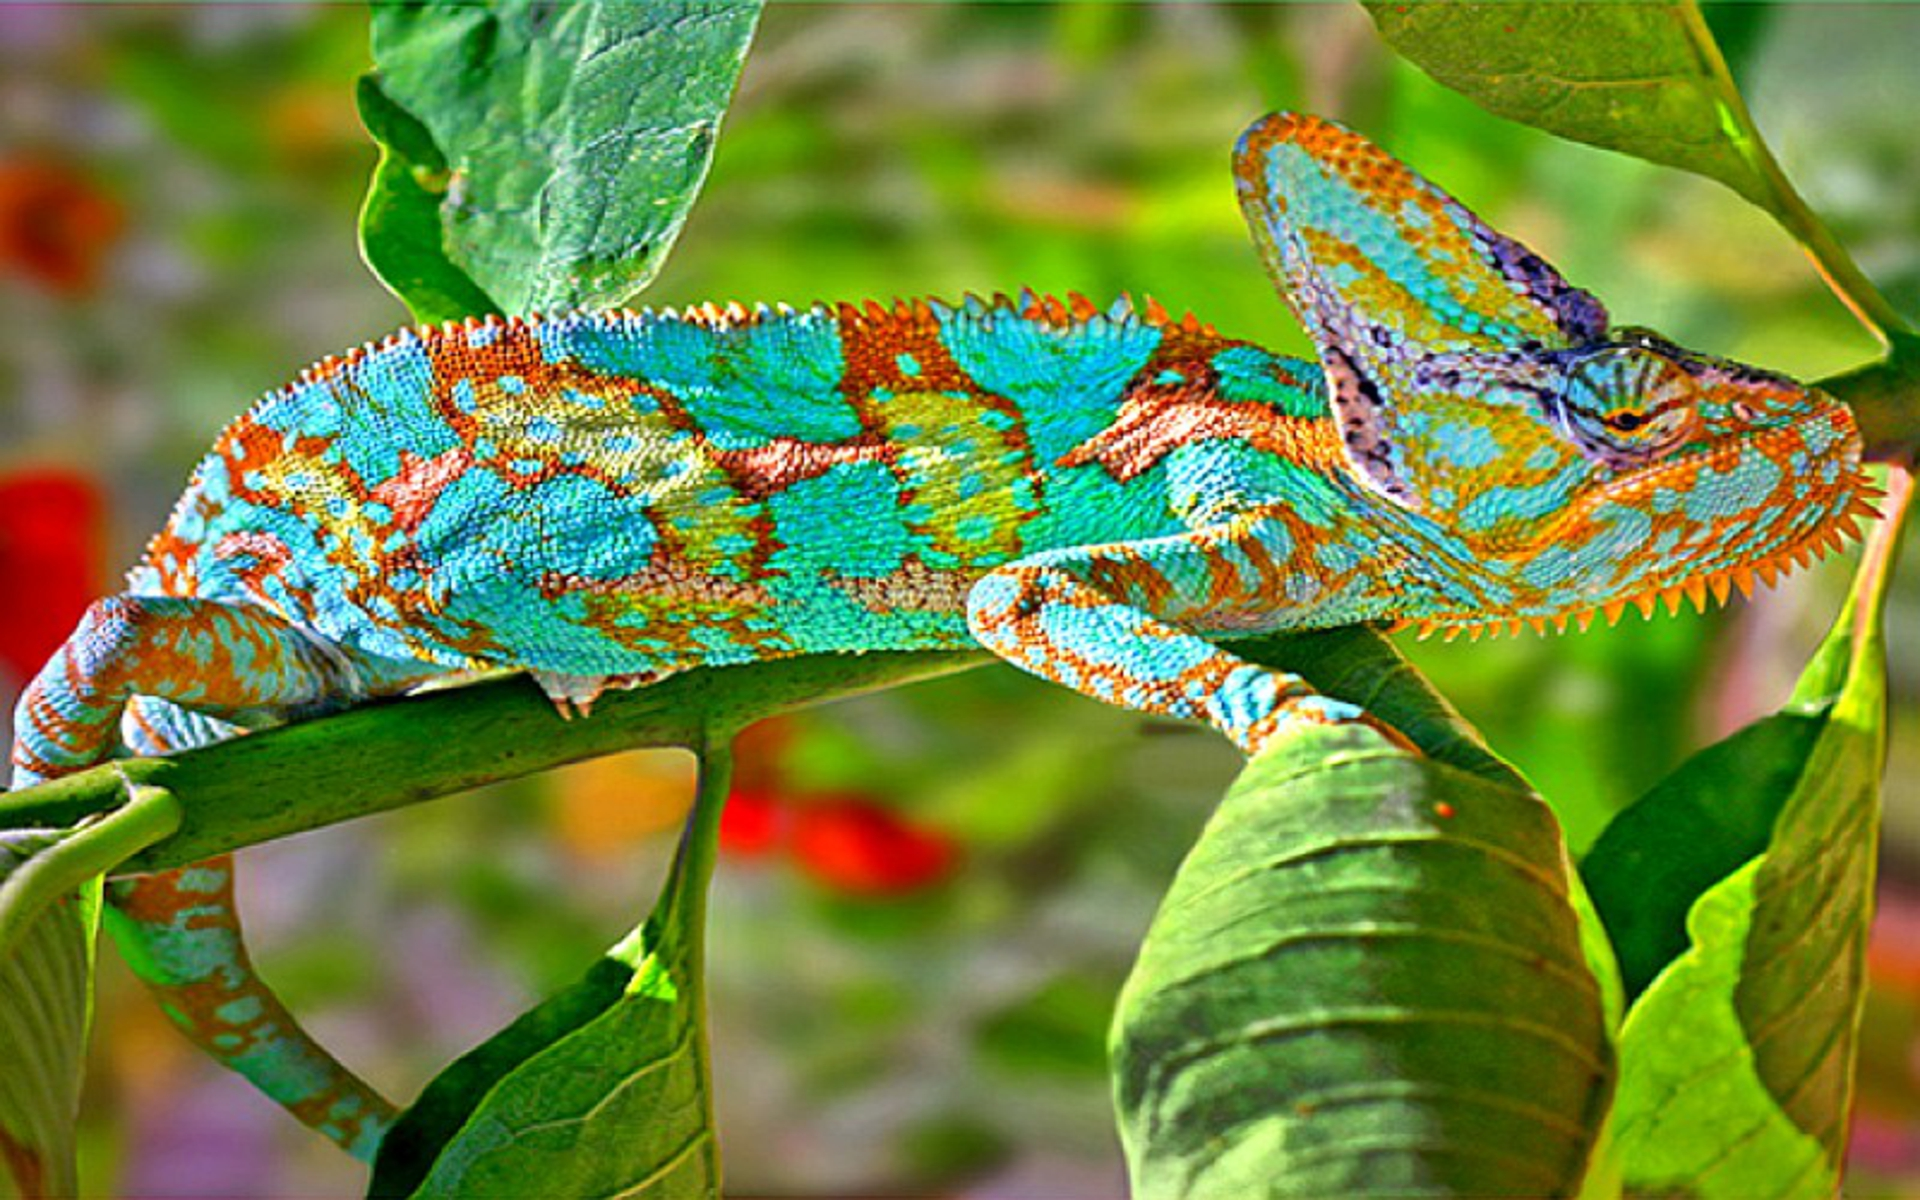 DOWNLOAD: chameleon hdr free background 2560 x 1600